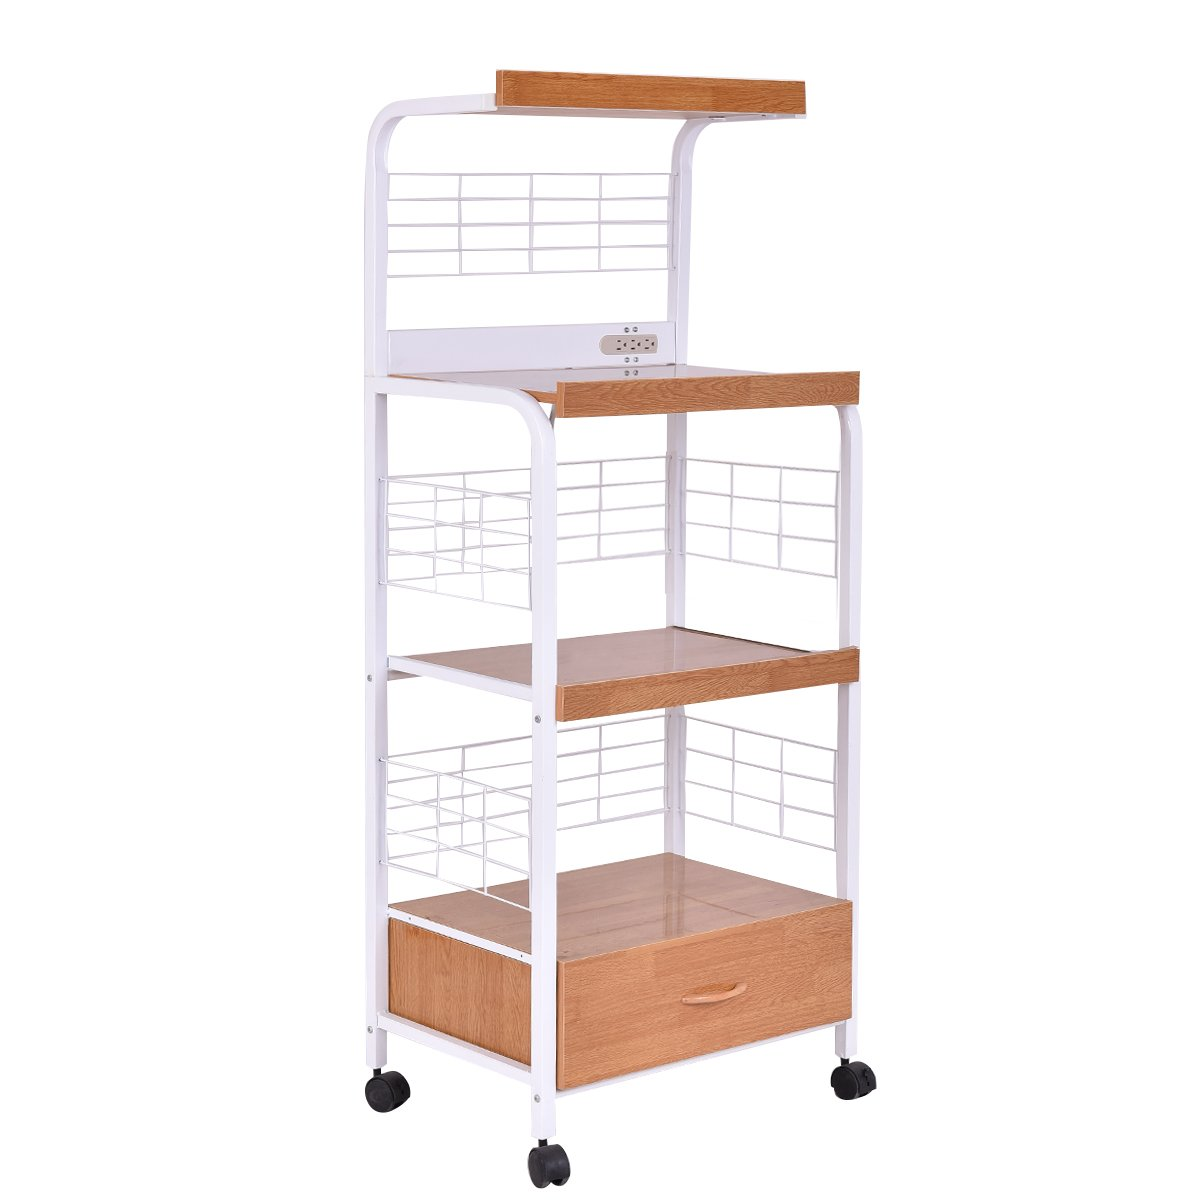 Giantex Microwave Cart Kitchen Baker's Rack Microwave Oven Stand Rolling Kitchen Storage Cart Utensils Organizer w/Electric Outlet and Drawer by Giantex (Image #1)